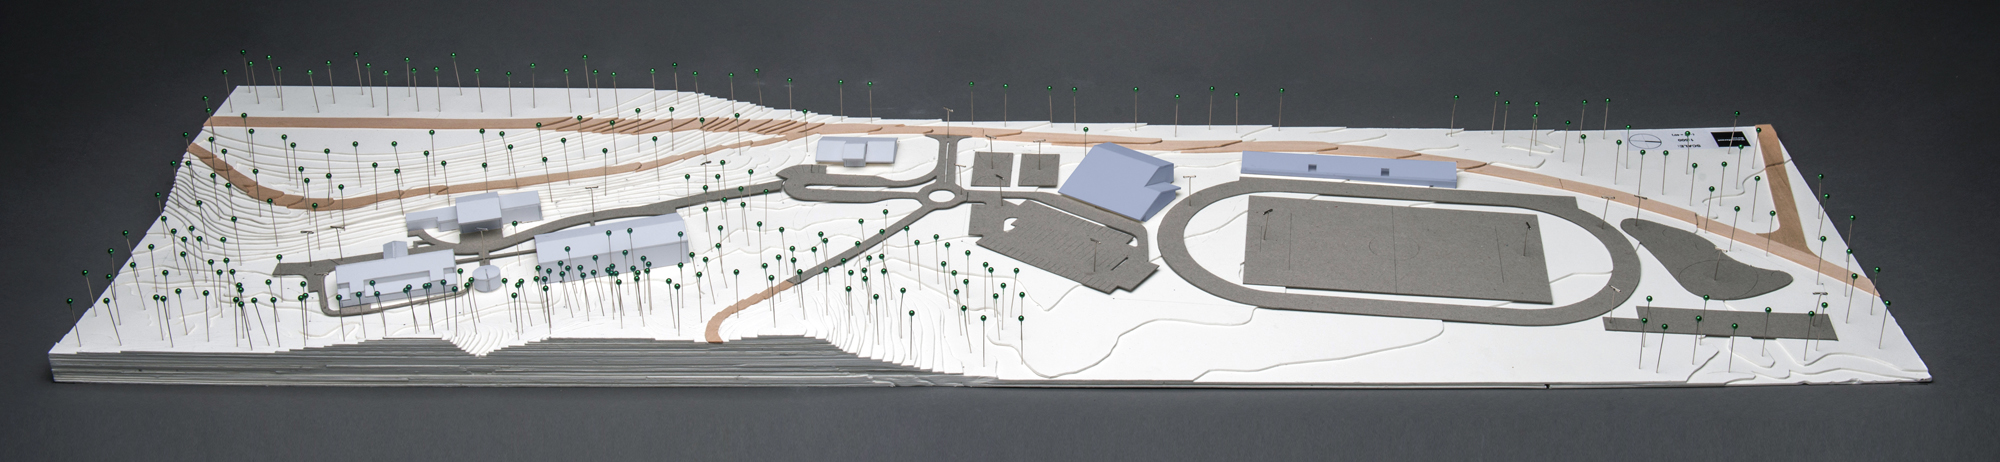 SelwynSchoolMasterPlan_model_05